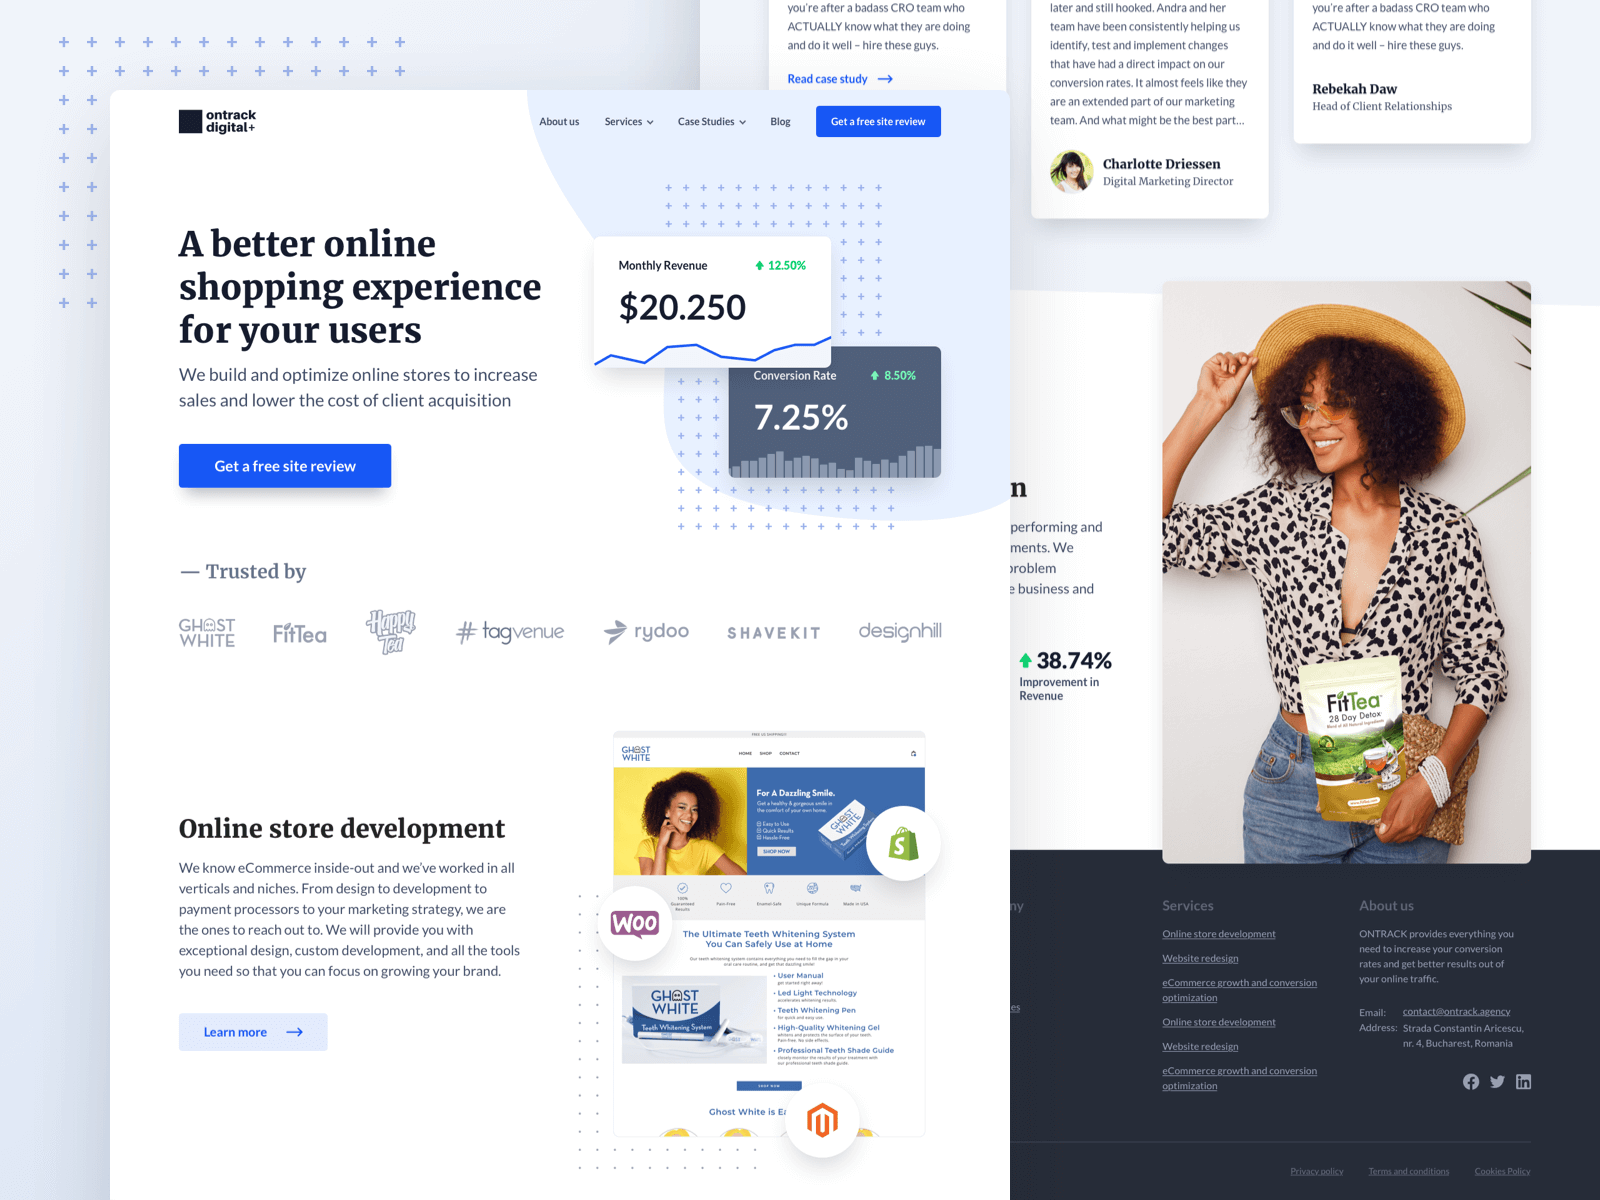 Landing page design for a digital agency that focuses on online stores